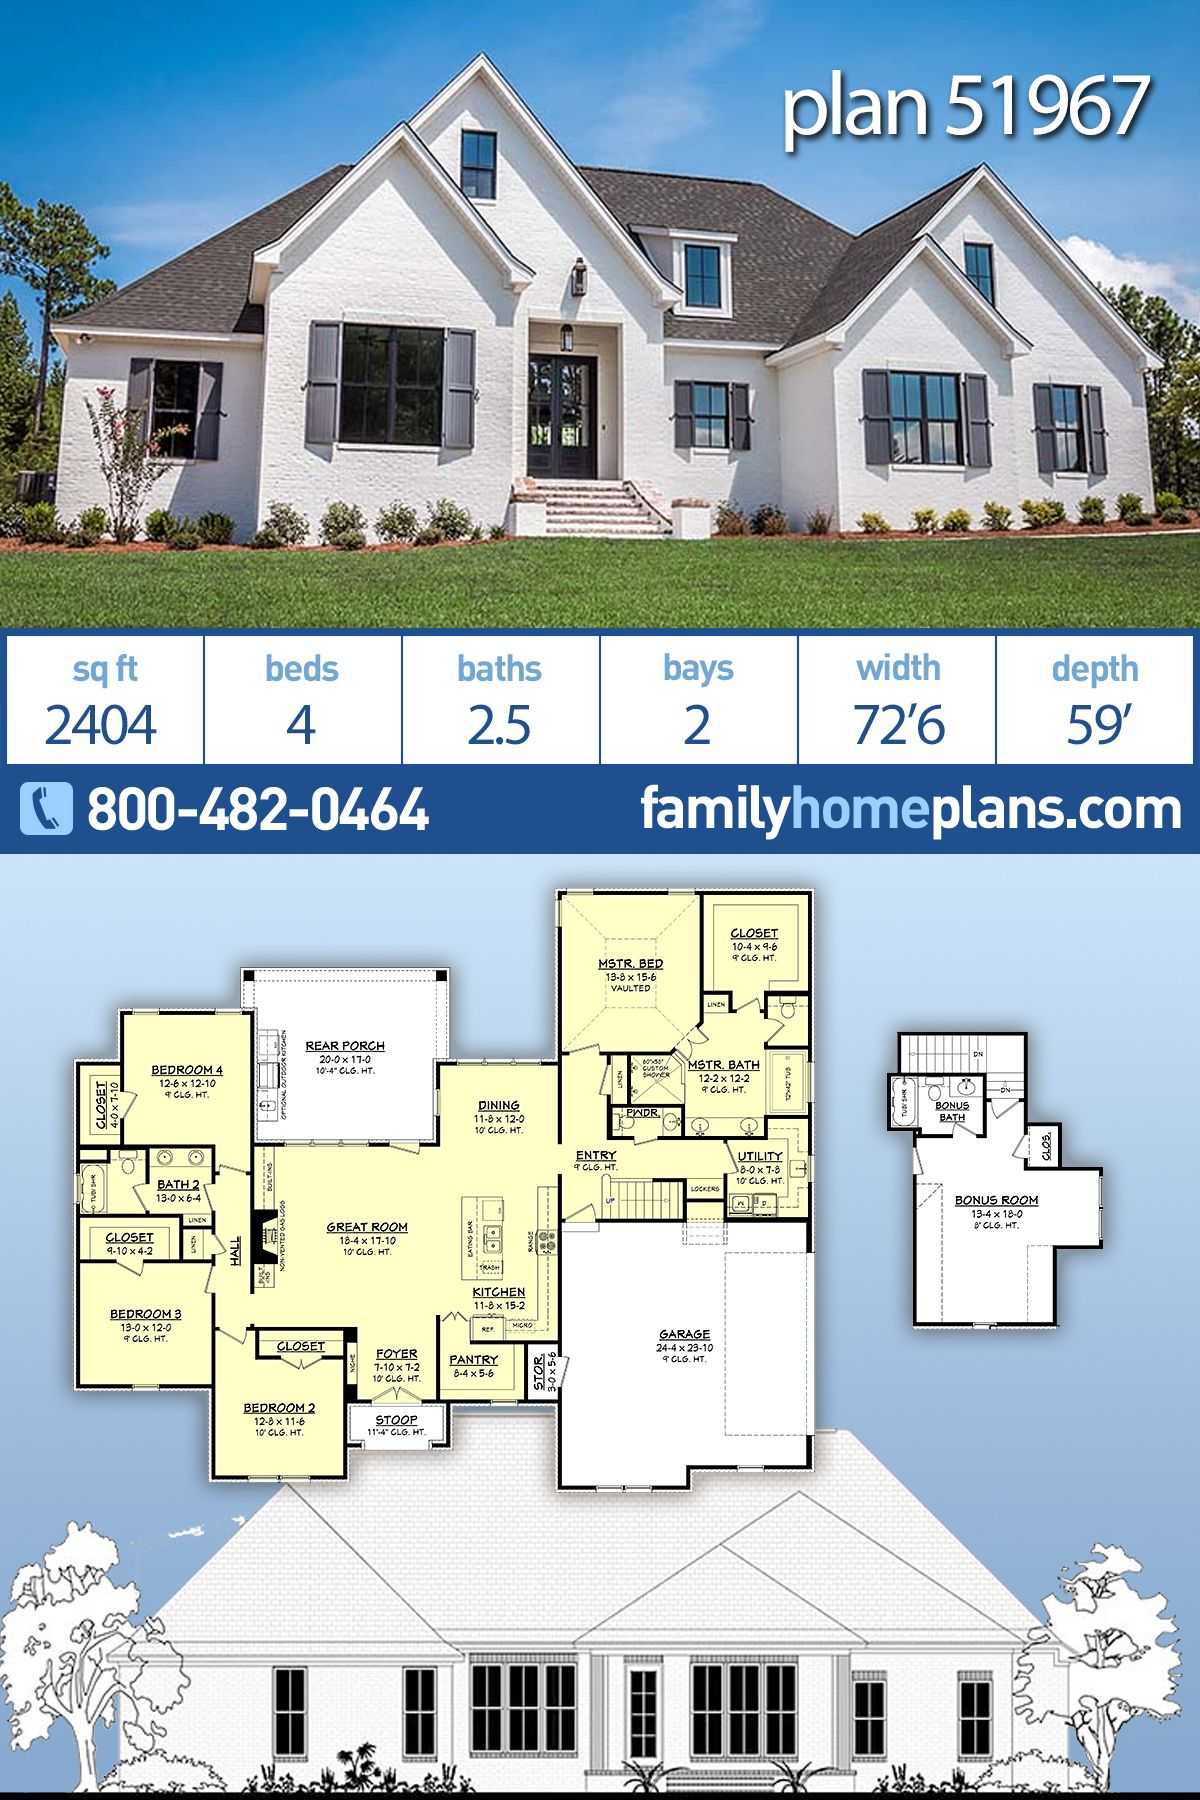 French Country Style House Plan 51967 With 4 Bed 3 Bath 2 Car Garage French Country House Family House Plans Country Style House Plans